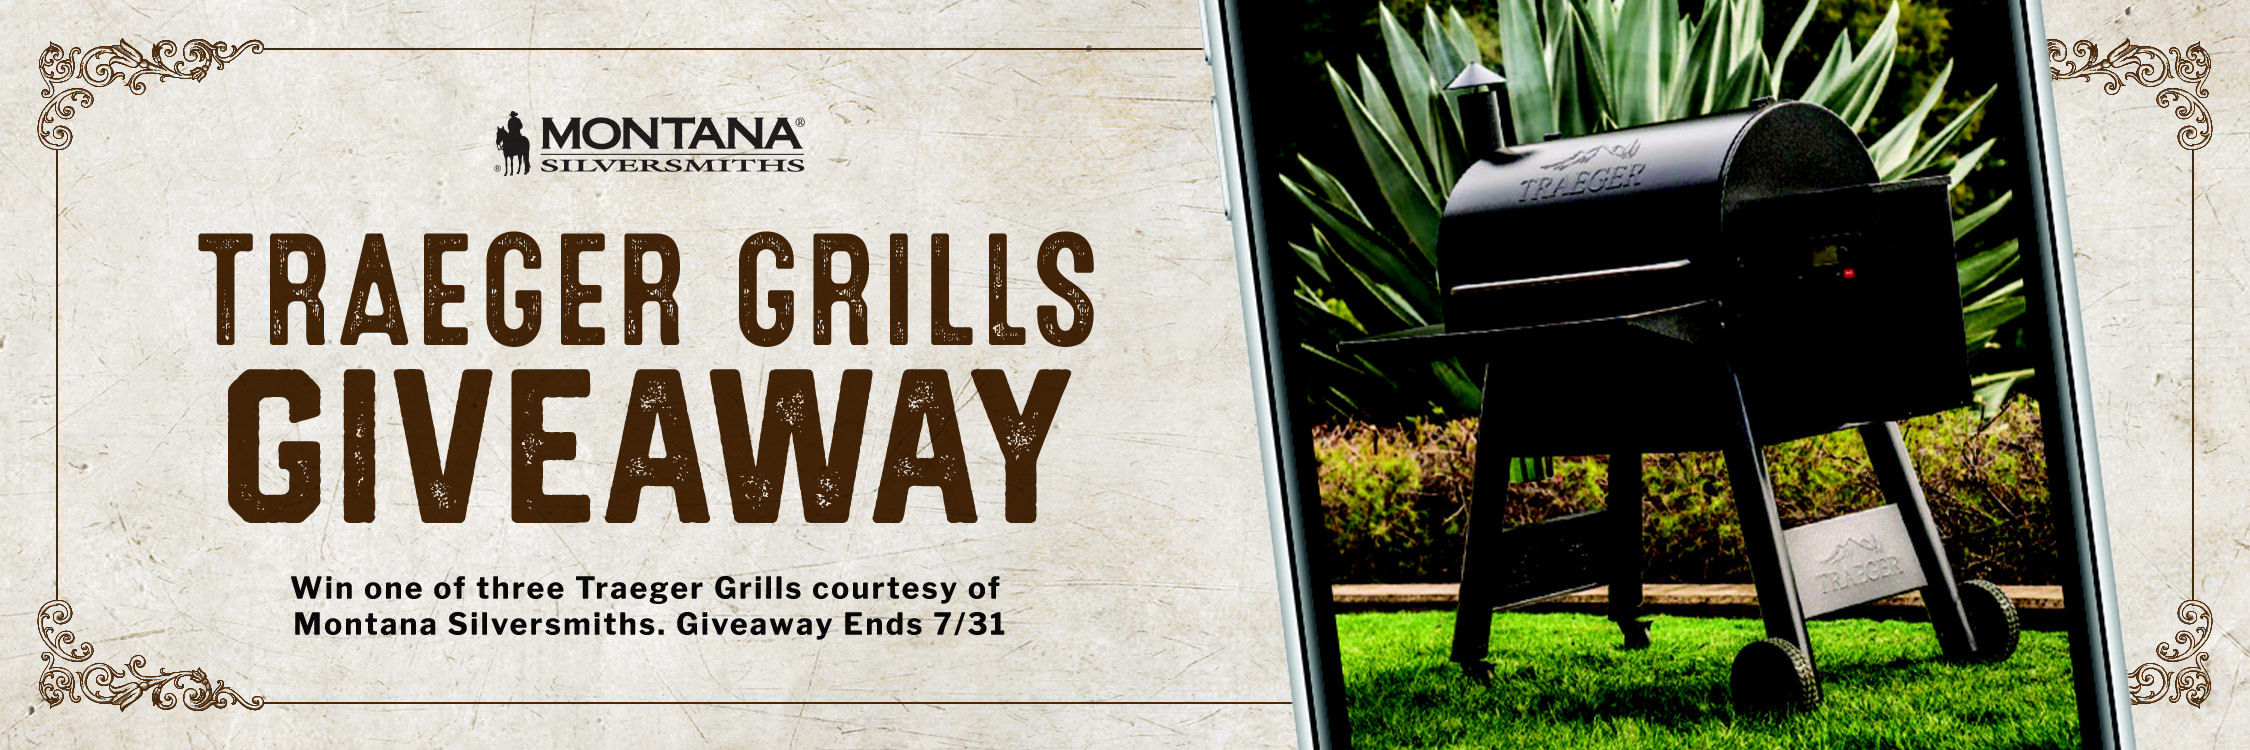 Traeger Grill Giveaway. Enter to win 1 of 3 Traeger Grills courtesy of Montana Silversmiths. Giveaway ends July 31, 2021!